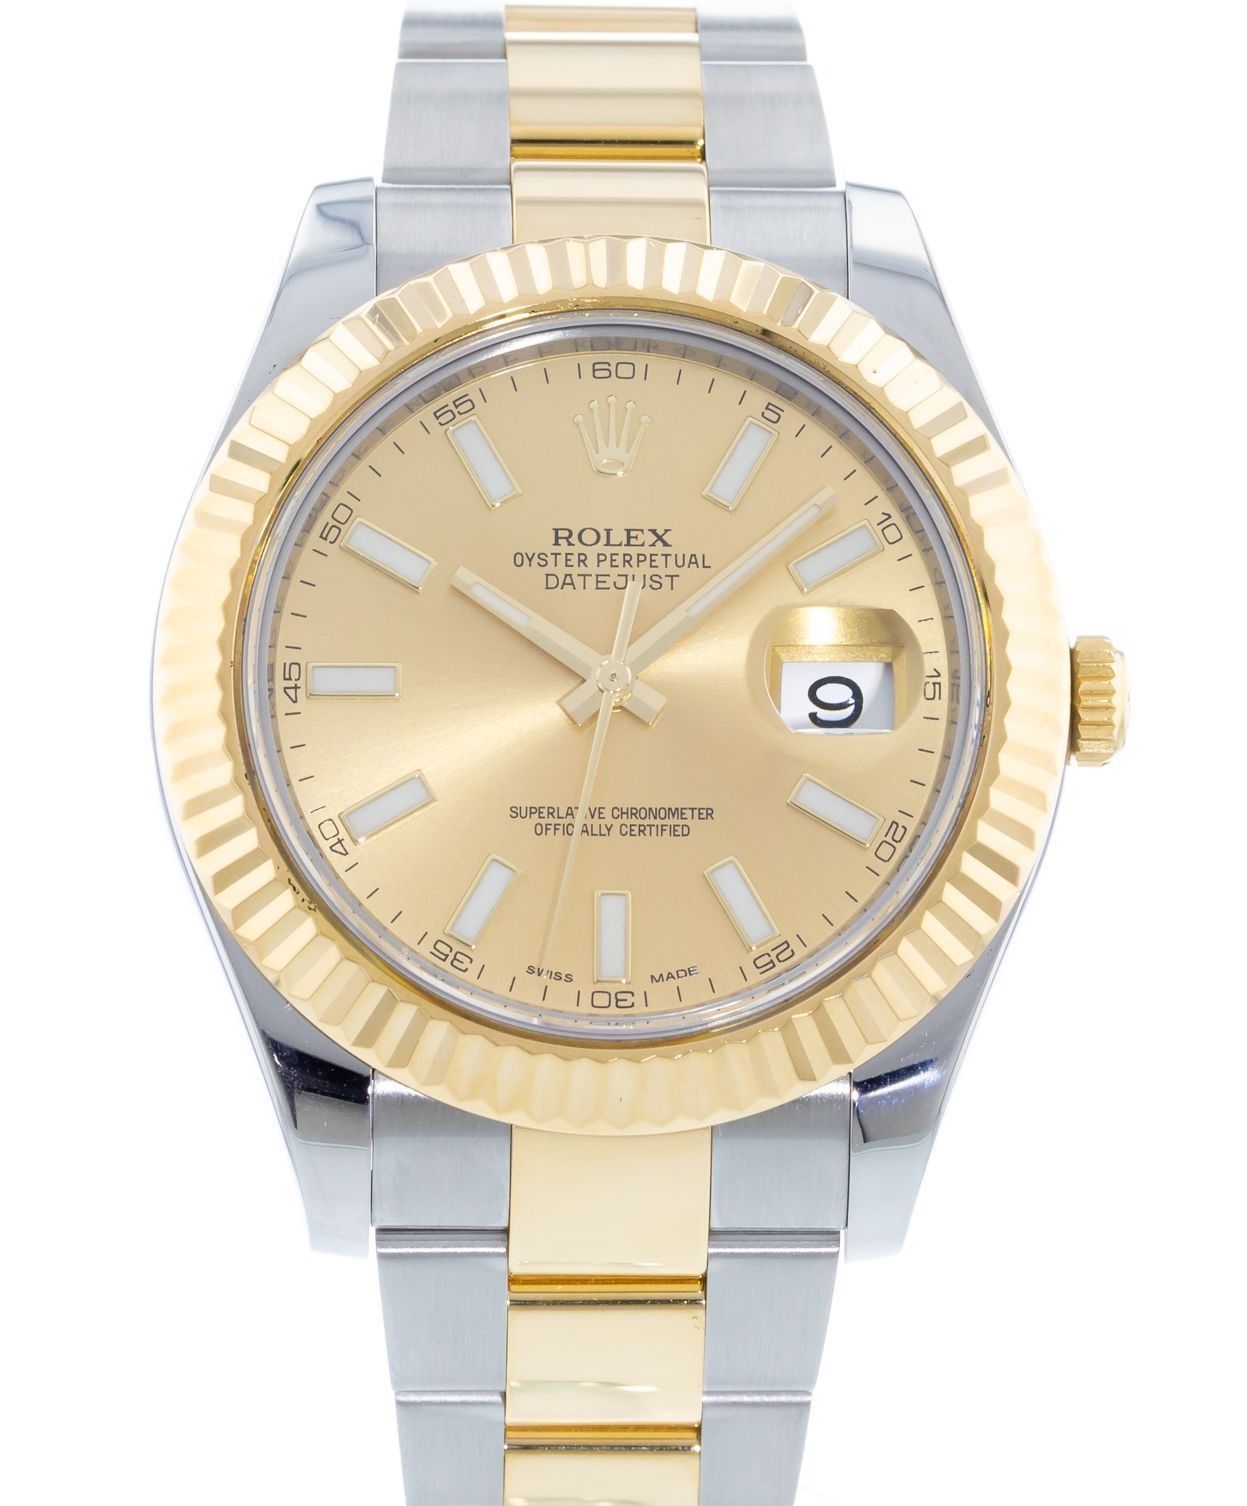 Rolex Datejust 41mm Yellow Gold and Stainless Steel Bracelet Champagne Dial 116333